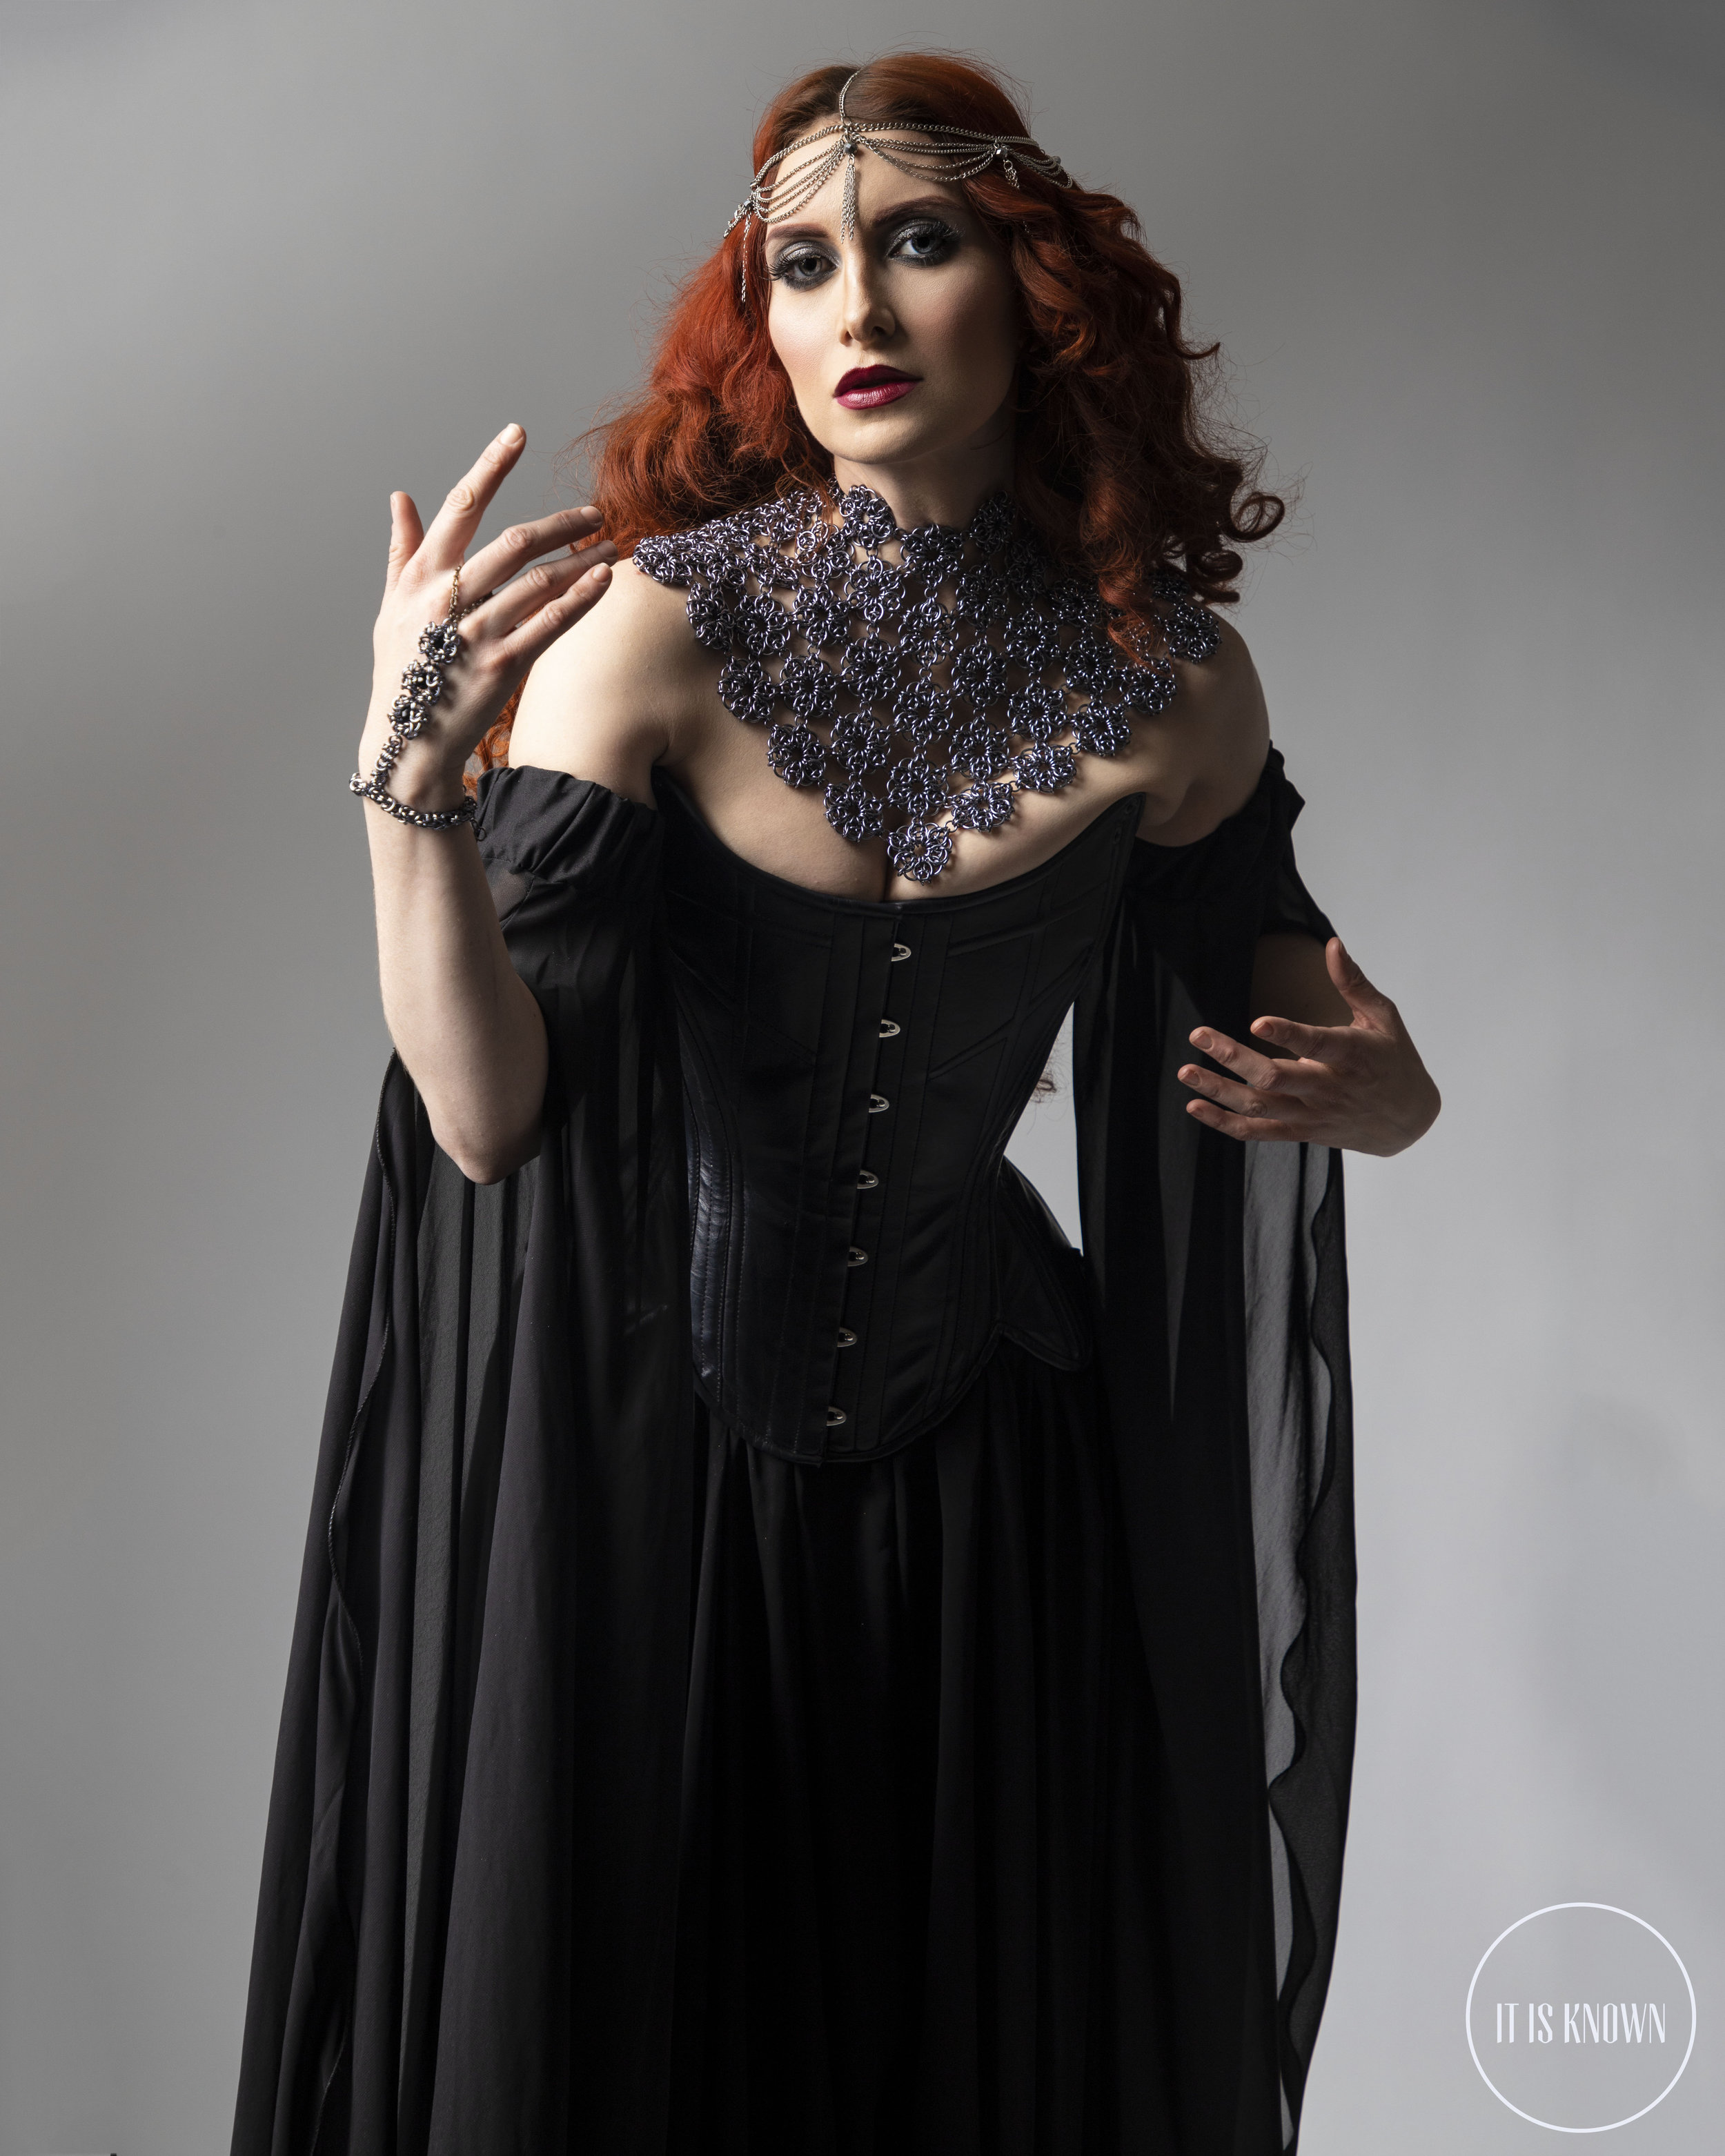 Scalemaille, Chainmaille, Styling, Creative Direction: It Is Known  Corsetry: Starkers http://www.starkers.com/  Staff: Crystal Habitats https://crystalhabitats.bigcartel.com/  Model: Cat Ross https://www.modelmayhem.com/4026061  Photography: Paul Tirado (http://www.paultiradophotography.com/)